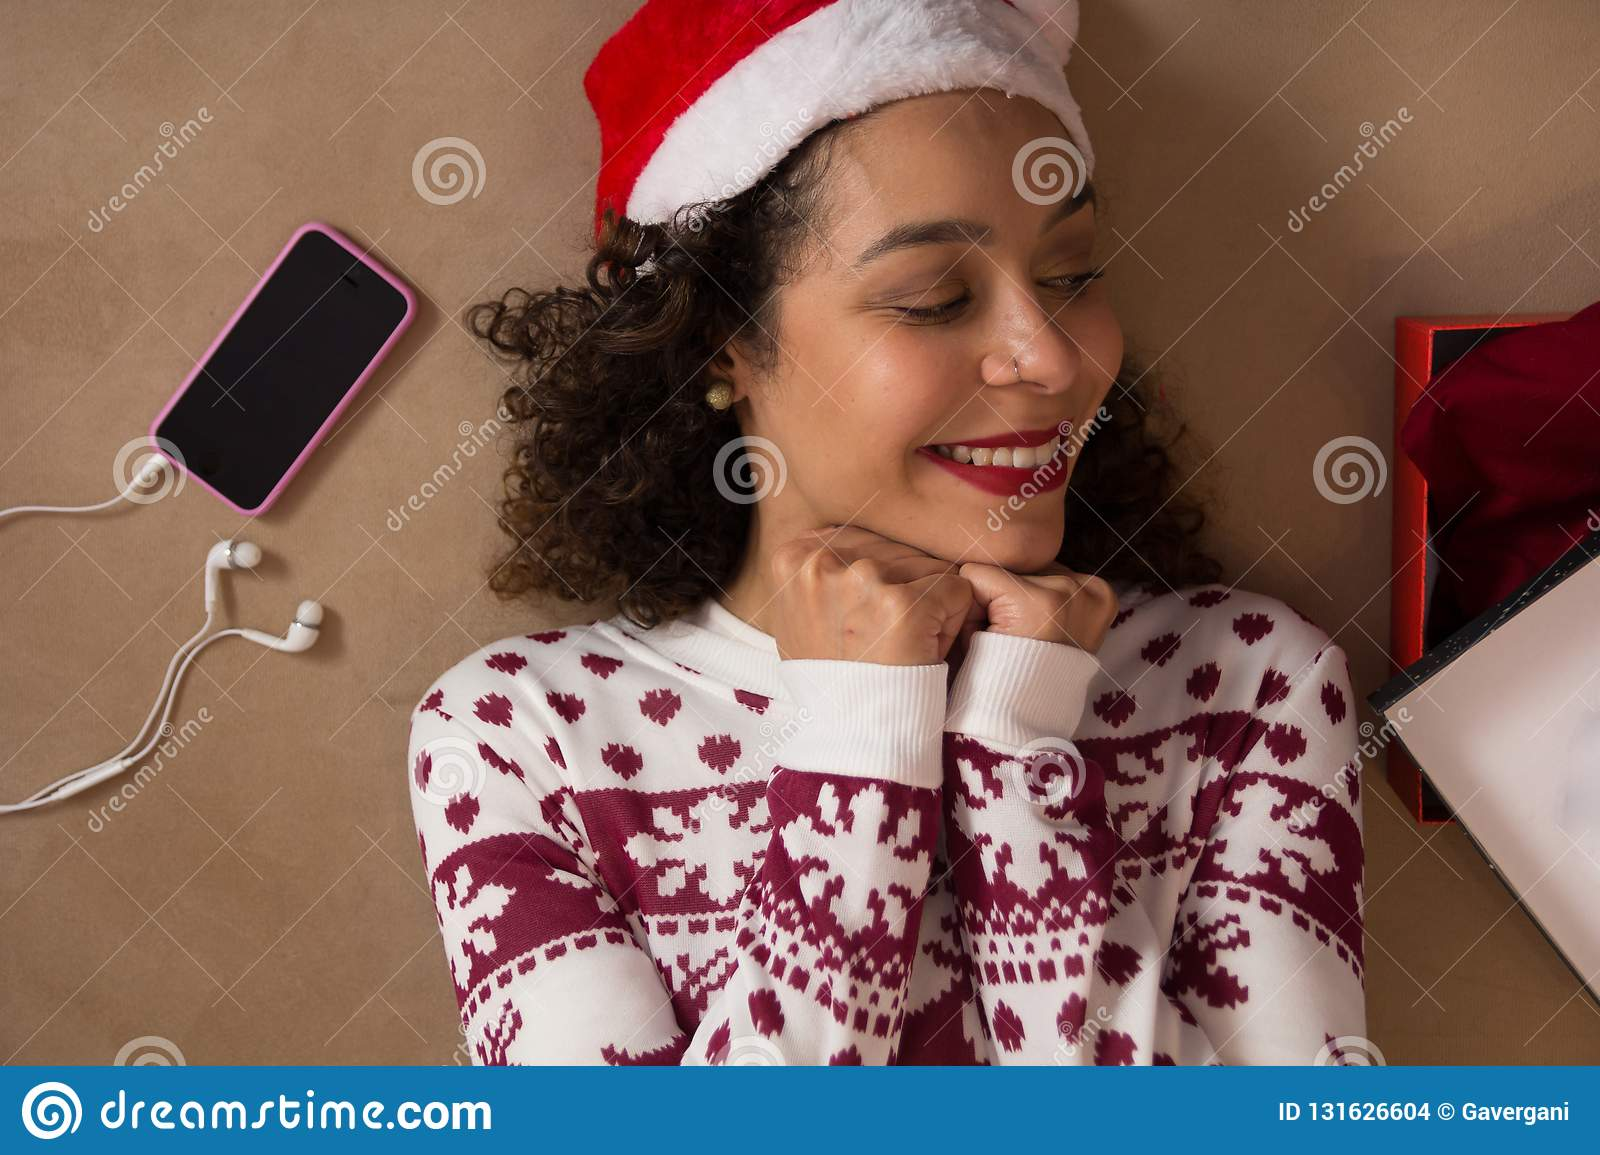 African American woman wearing Santa hat and Christmas sweater lying down and looking at gift box